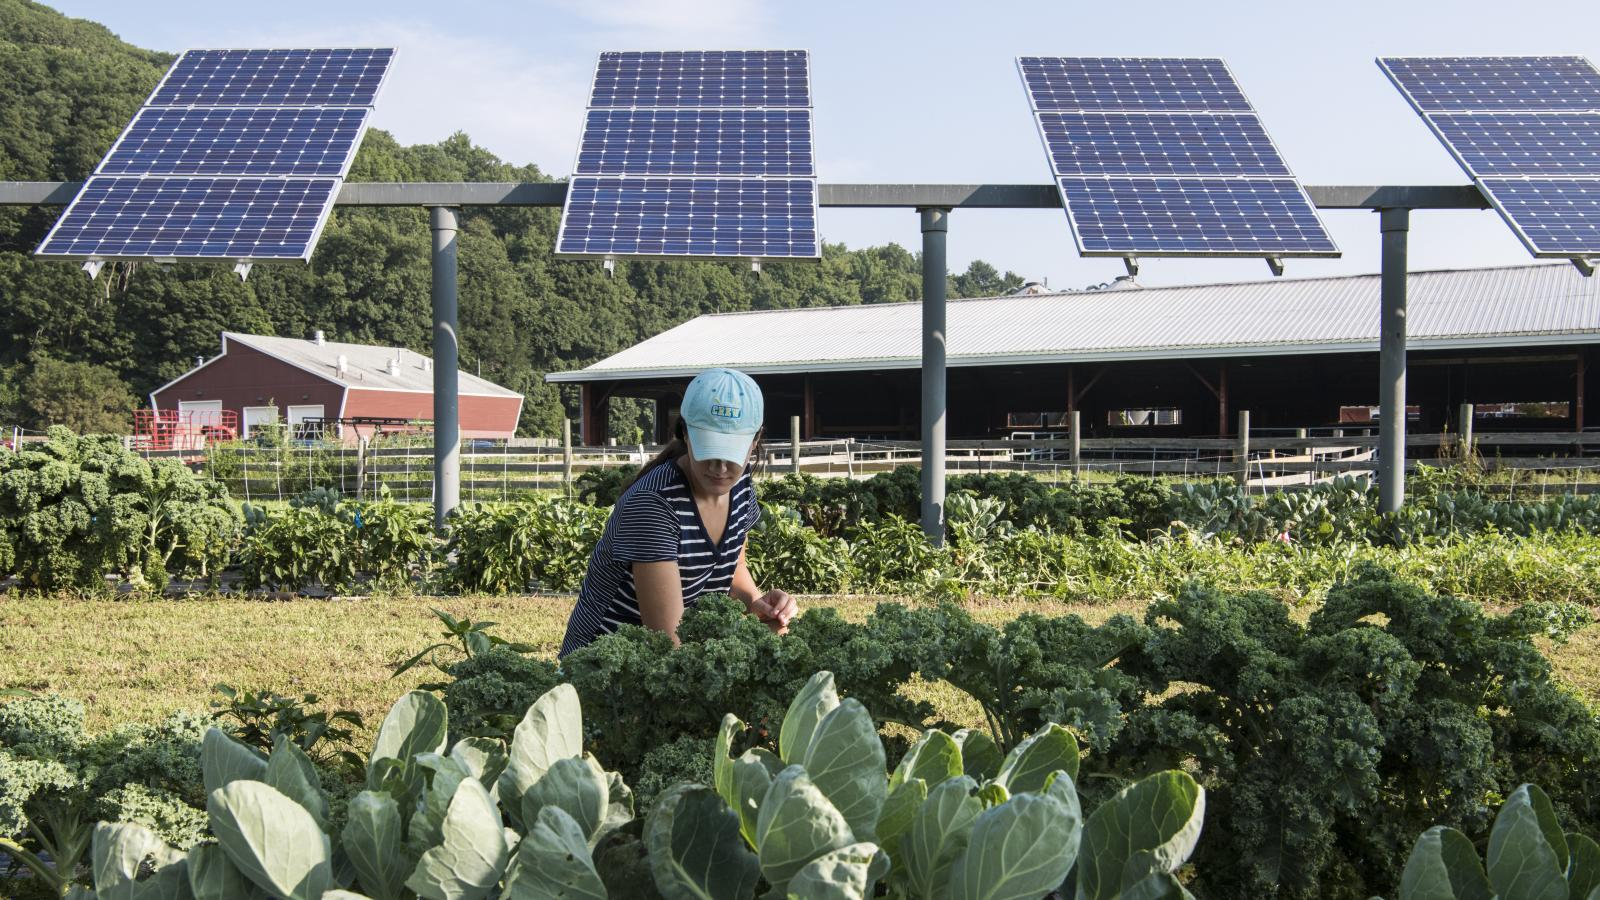 woman squatting tending to crops. solar array in background